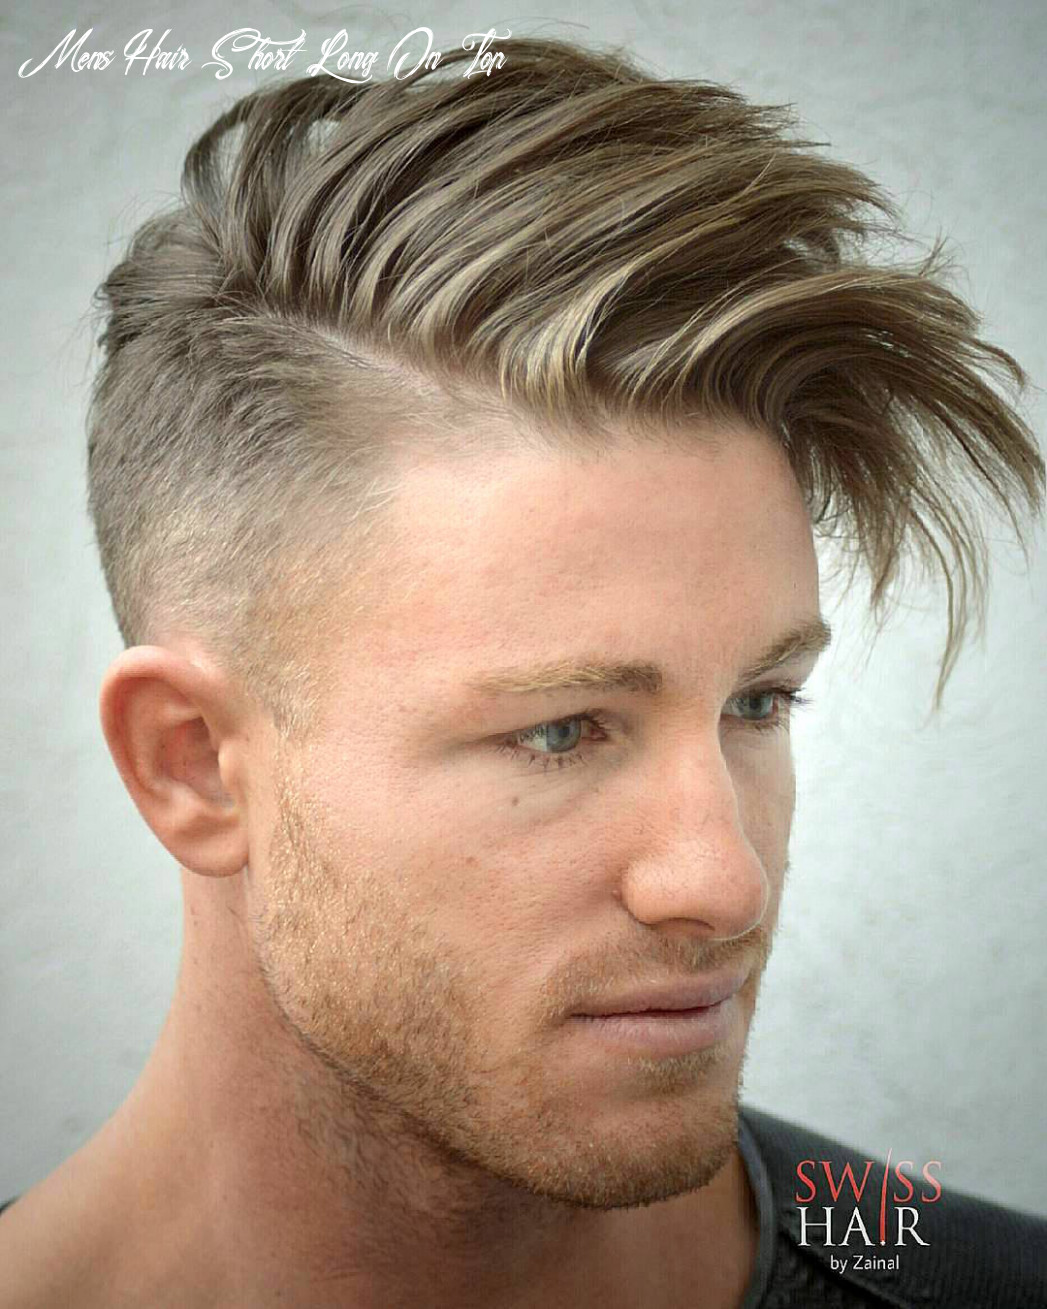 Long hair hairstyles for men: 9 cool haircut styles for 99 mens hair short long on top